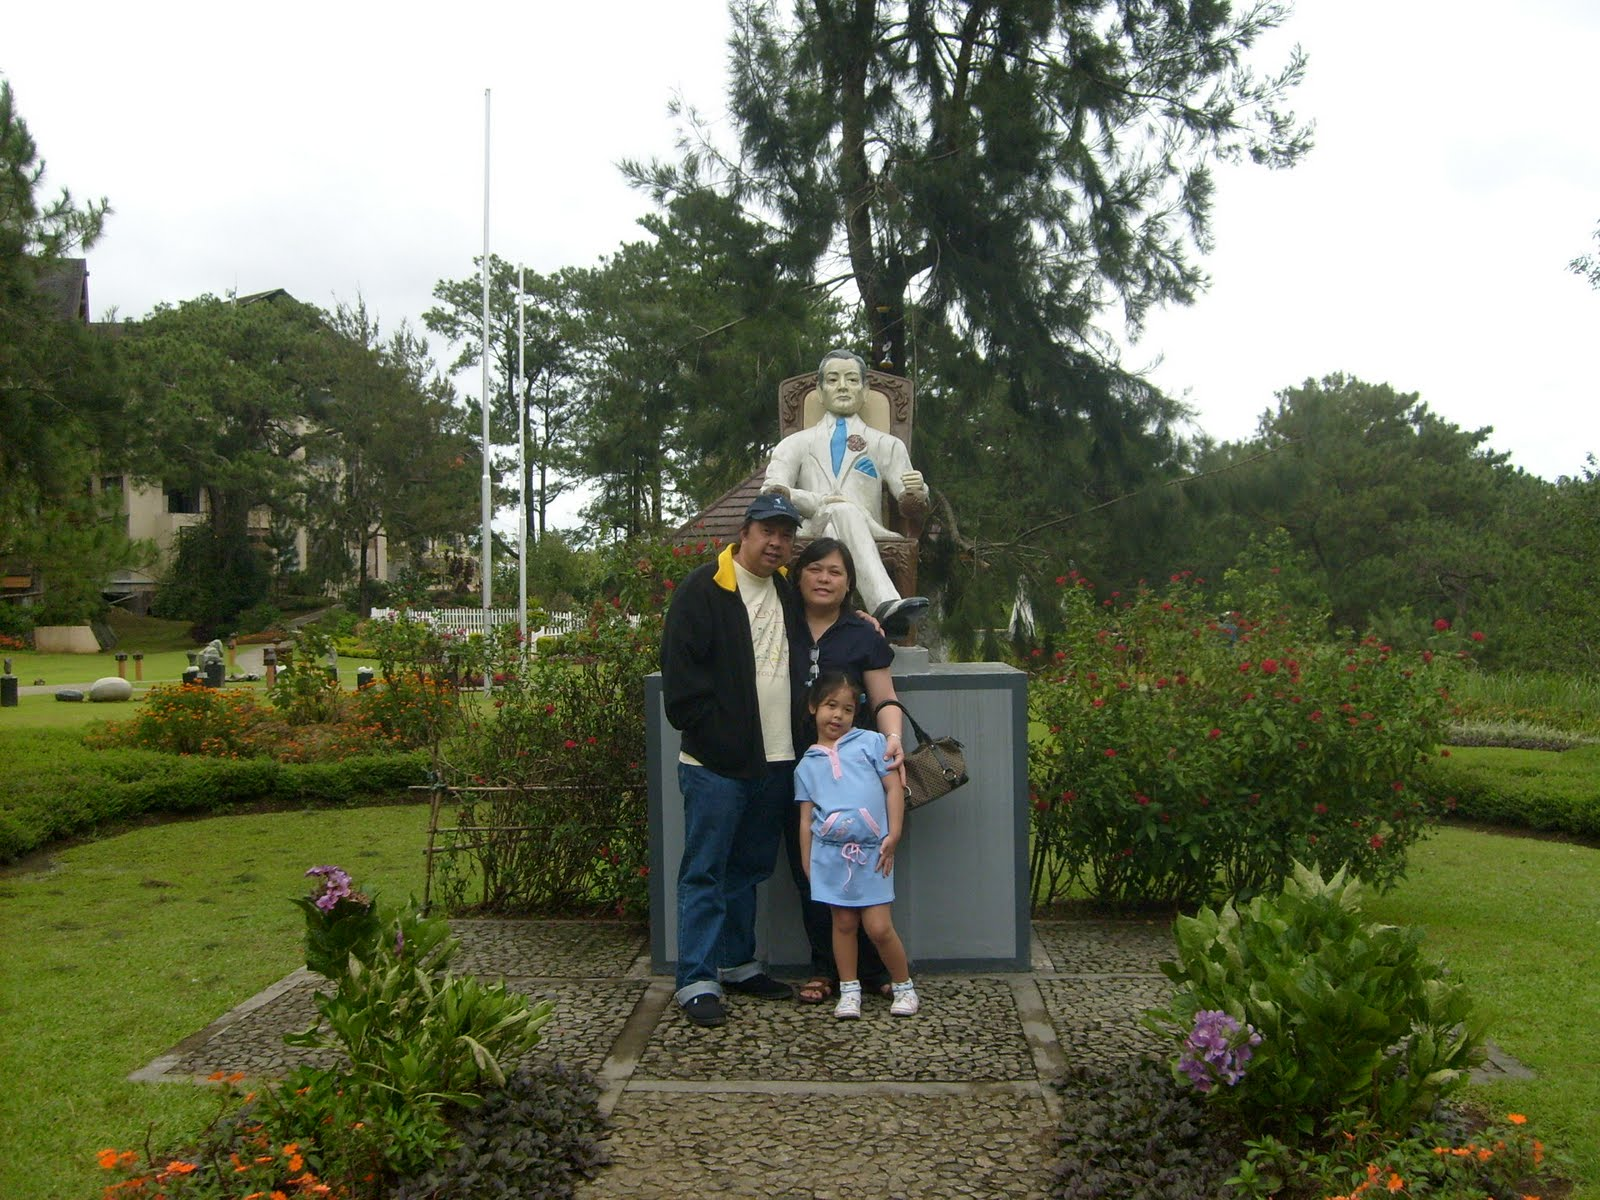 ferddie u0026 39 s blue jeans  a foggy family outing in baguio  part 1